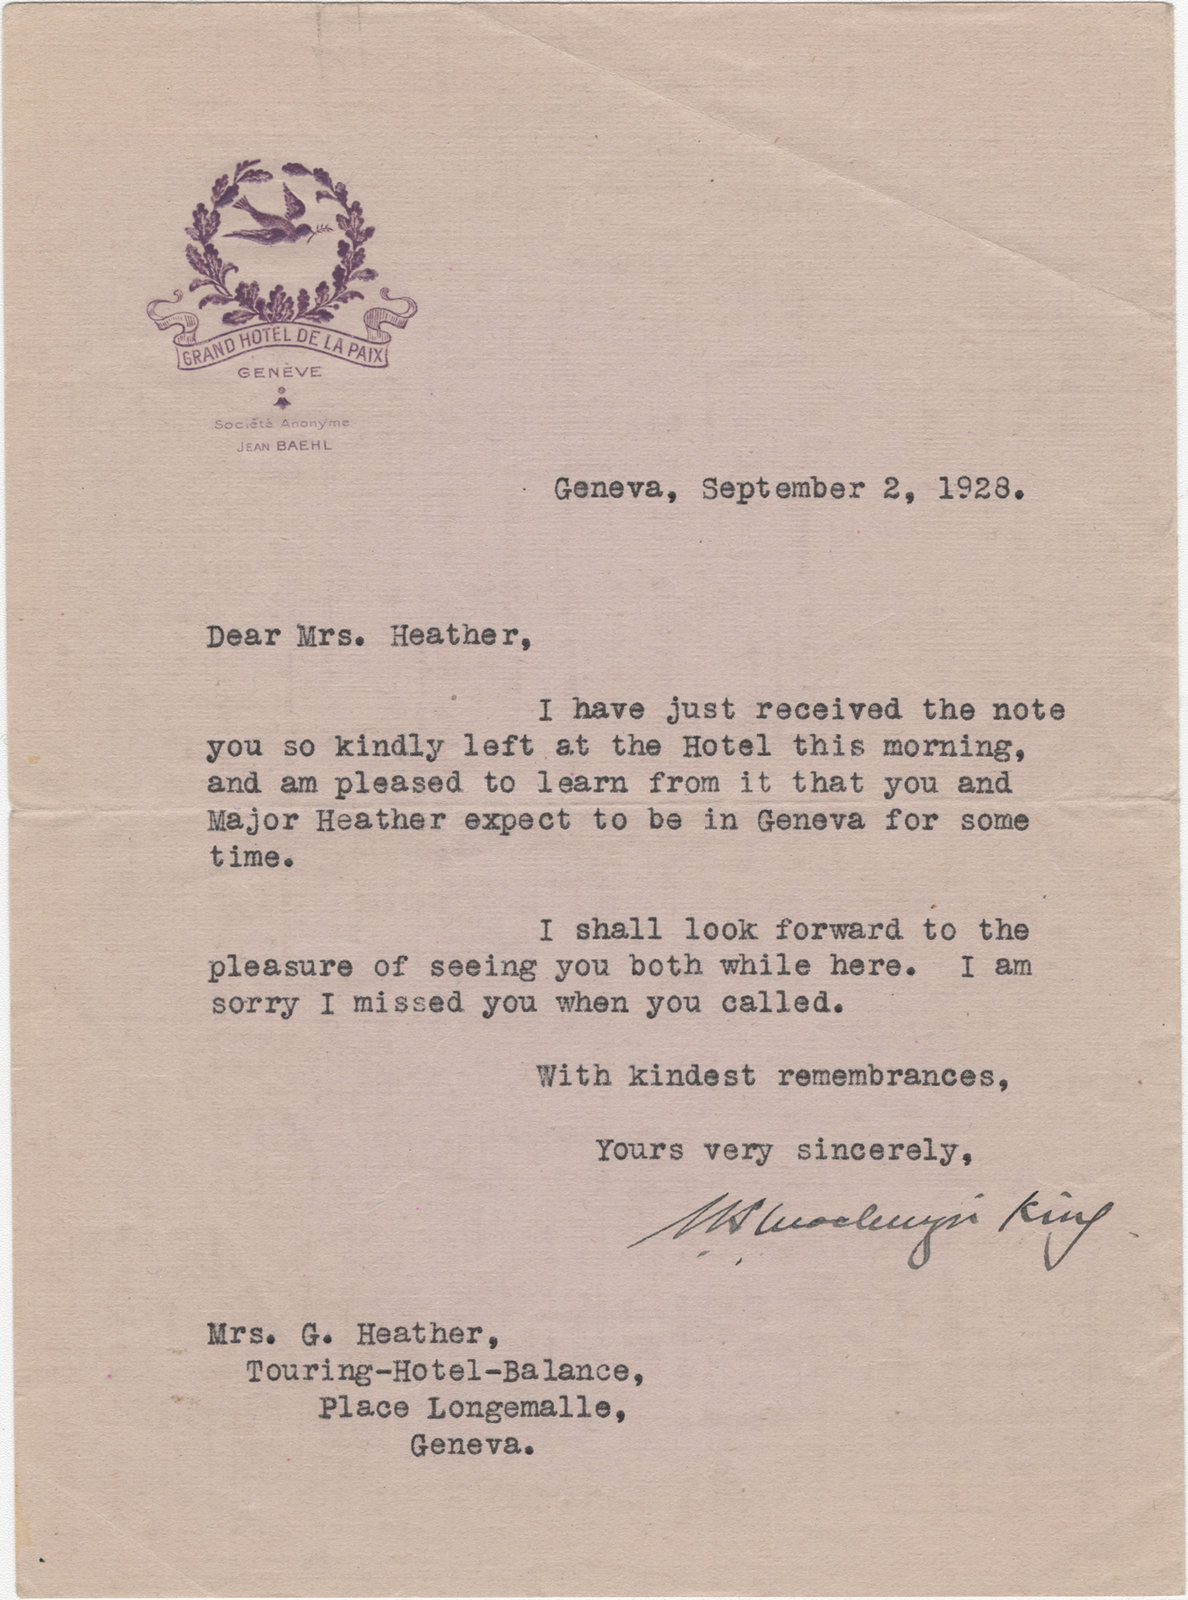 Letter from William Lyon Mackenzie King to Mrs. George A. Heather, September 2, 1928